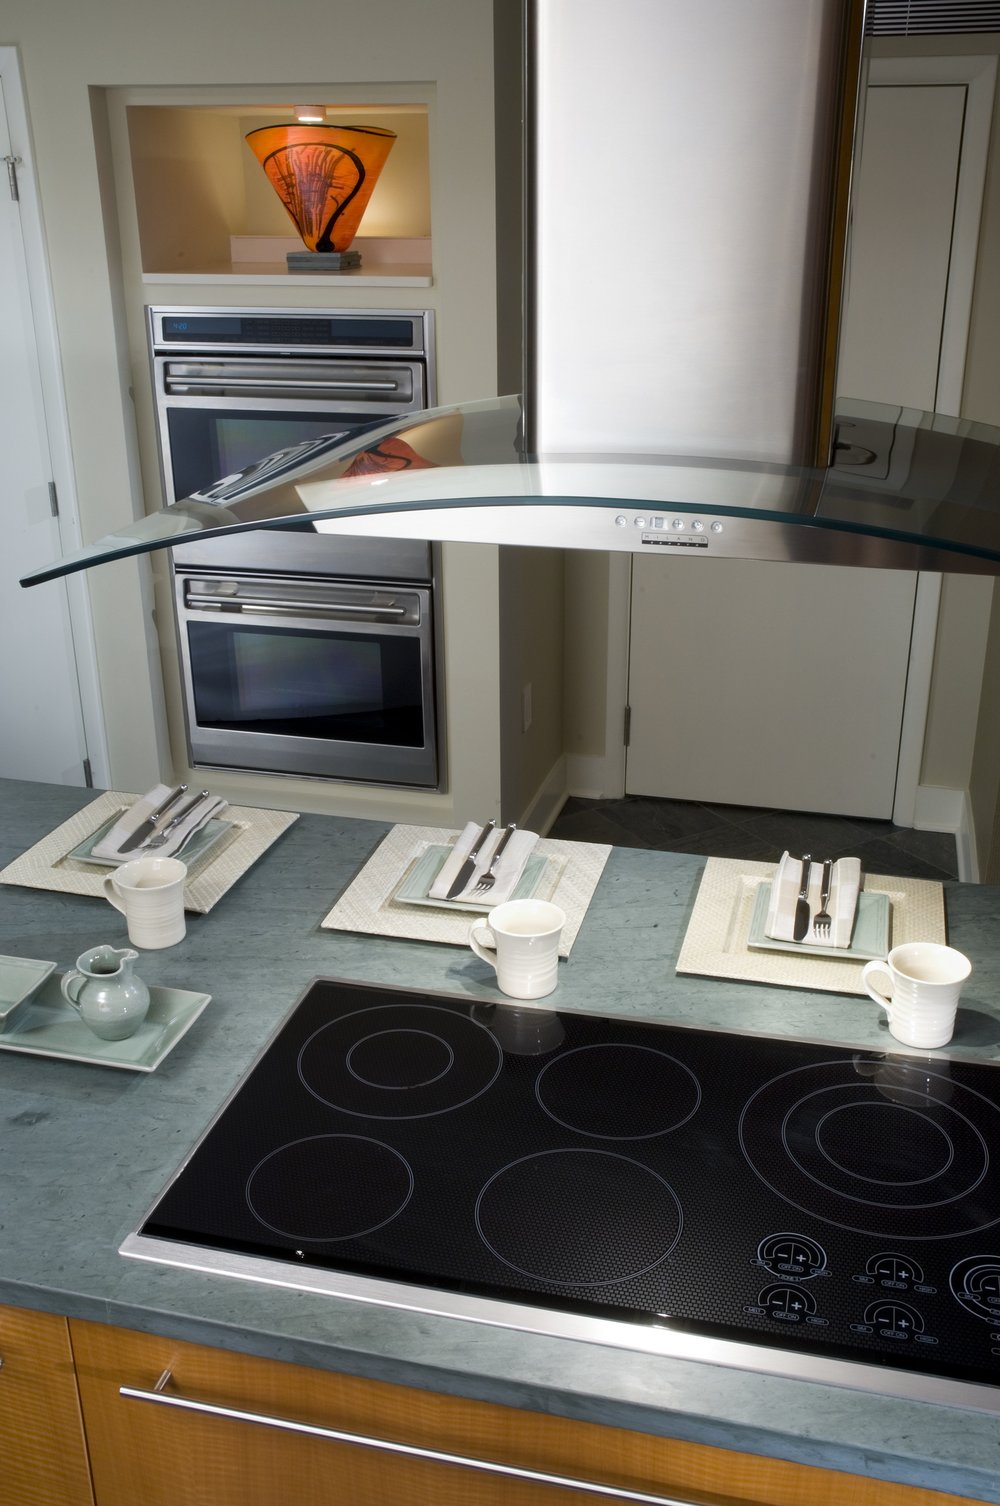 KBC_kitchen_bath_concepts_Kitchen_165.jpg